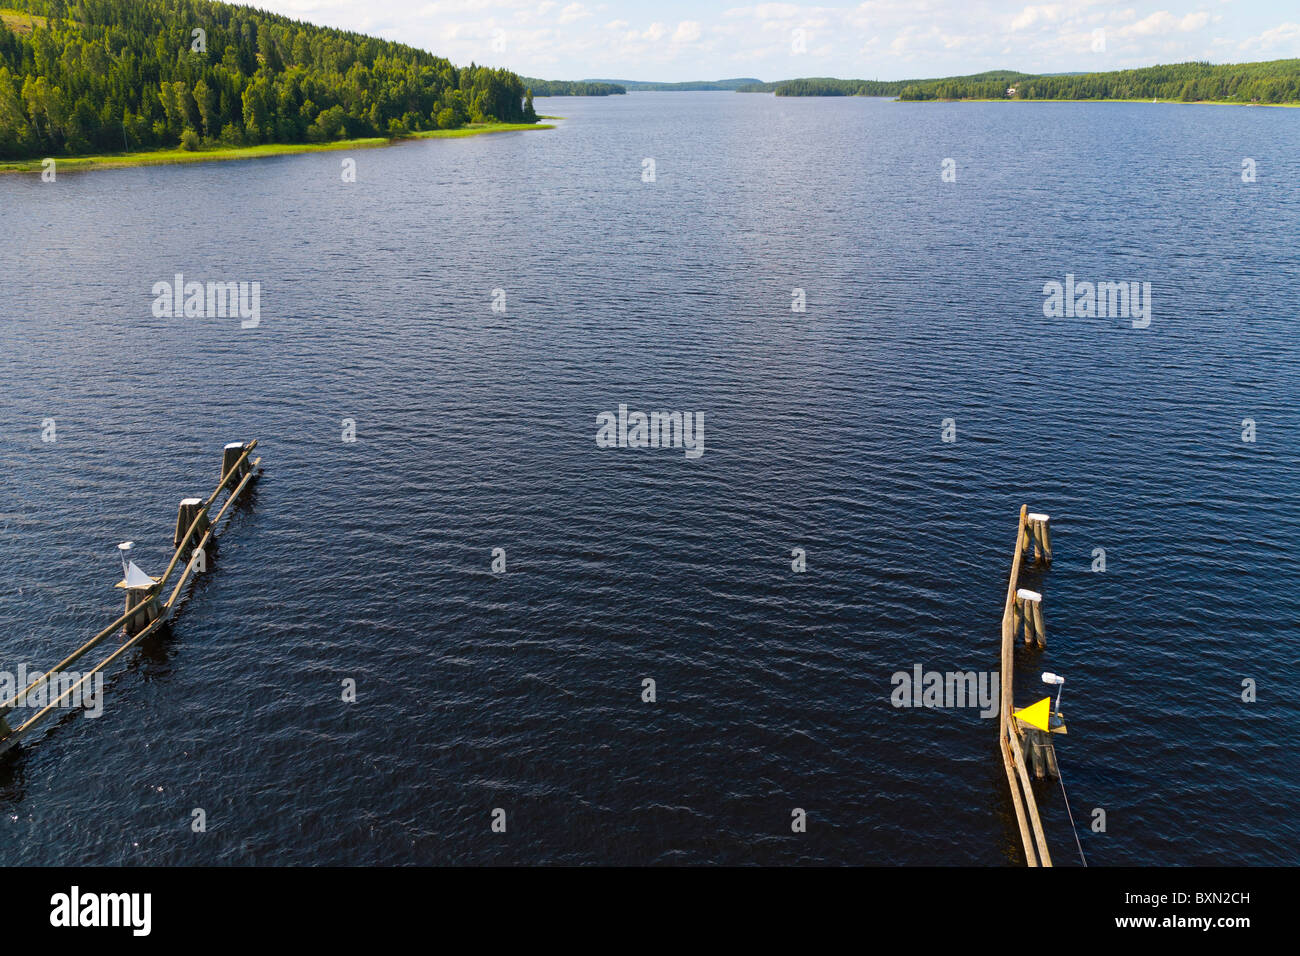 The sluice at lake Glafsfjorden, Varmland, Sweden. - Stock Image